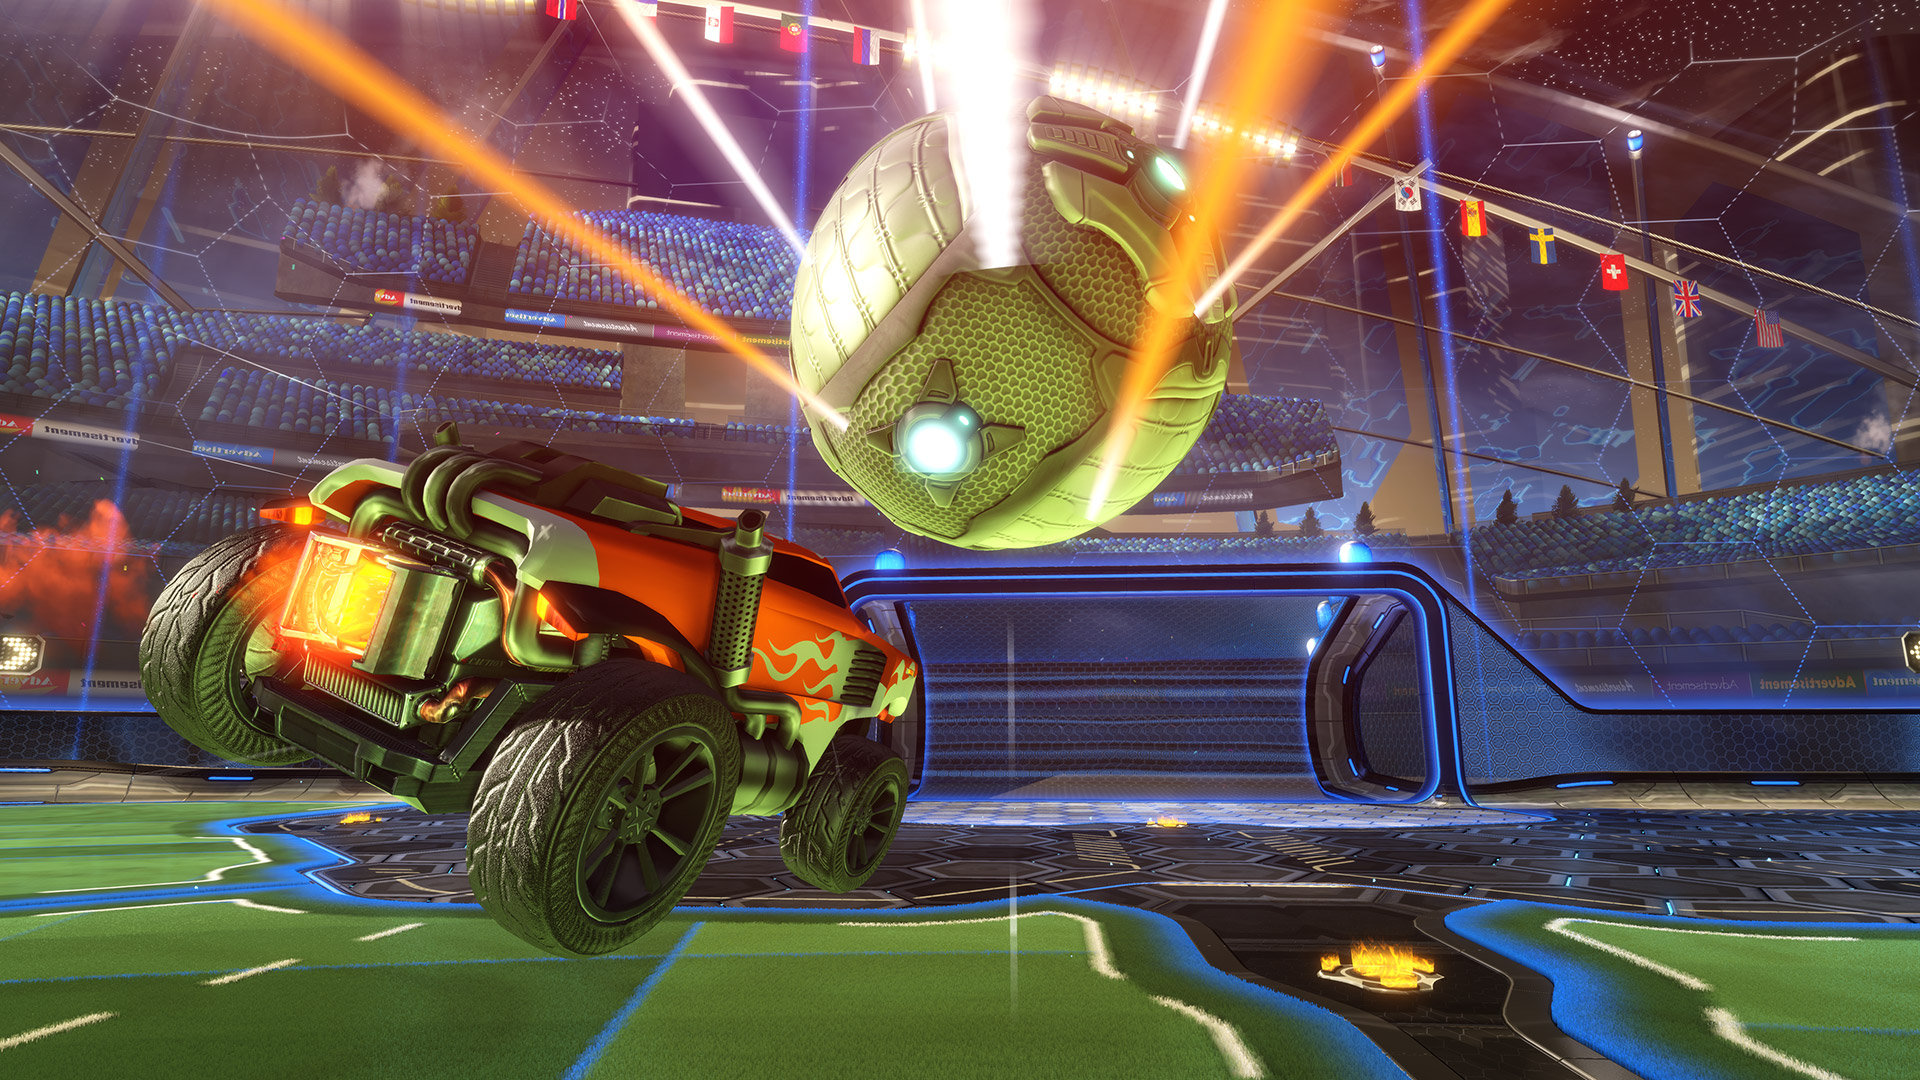 Amazon.com: Rocket League [Online Game Code]: Video Games